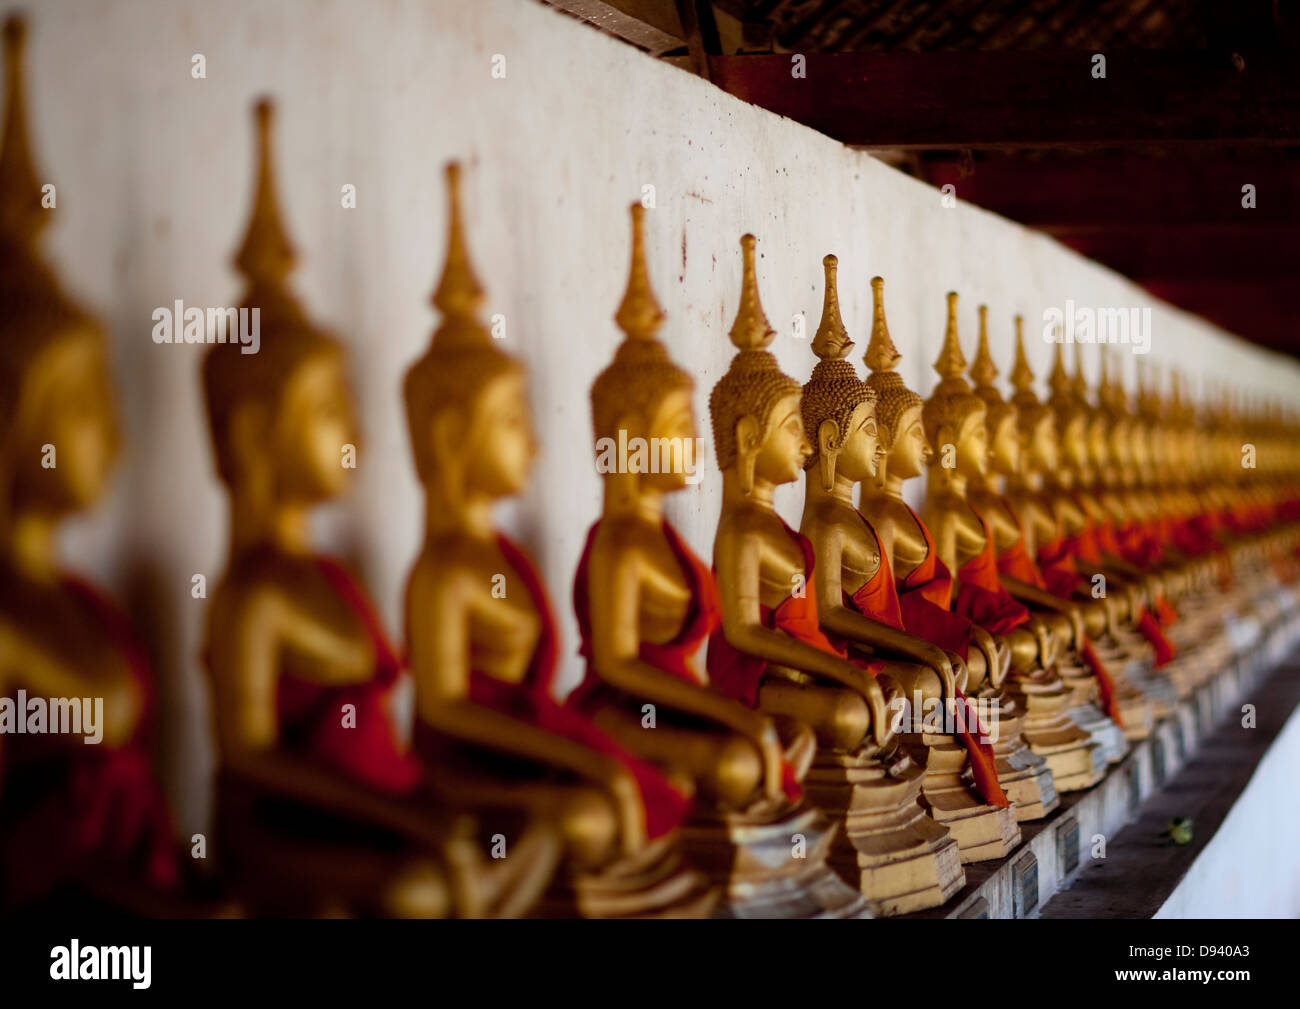 Buddha Statue In Hang Temple, Savannakhet, Laos - Stock Image